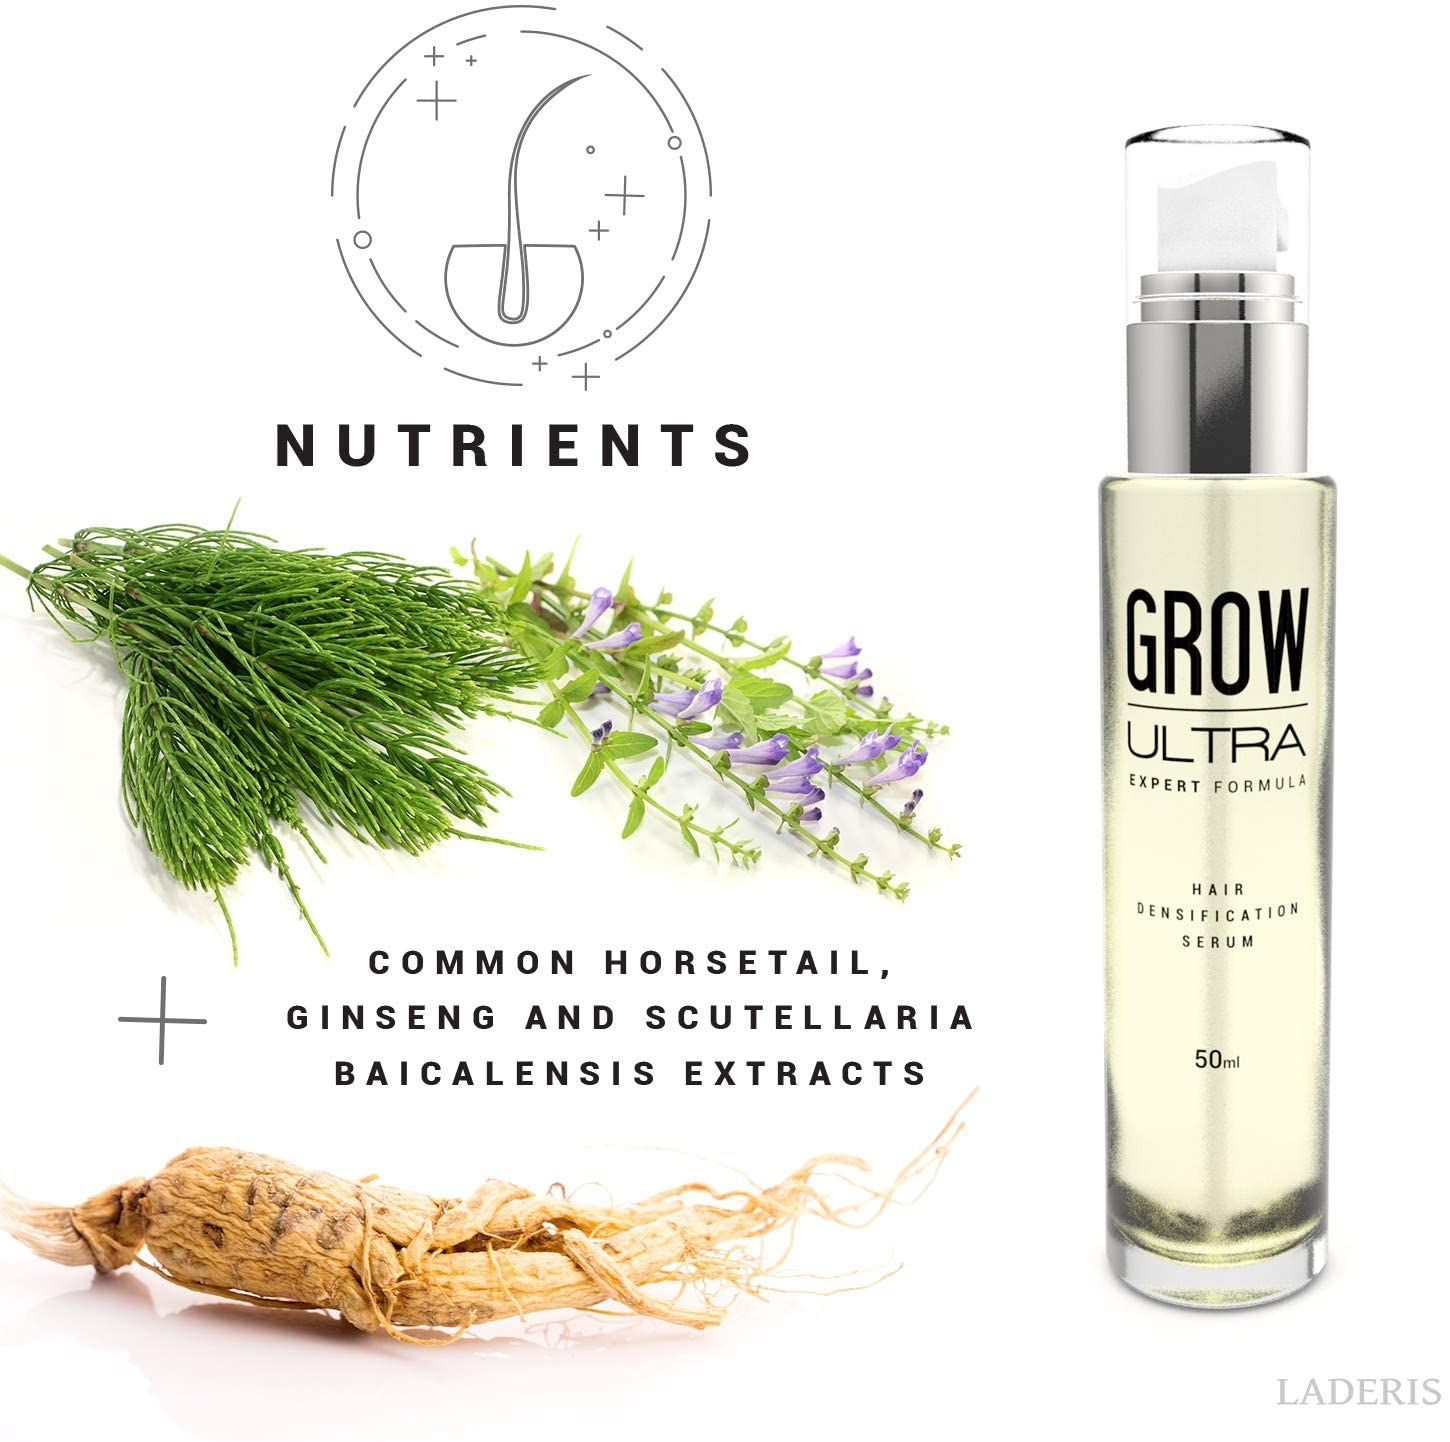 Ingredients of GrowUltra